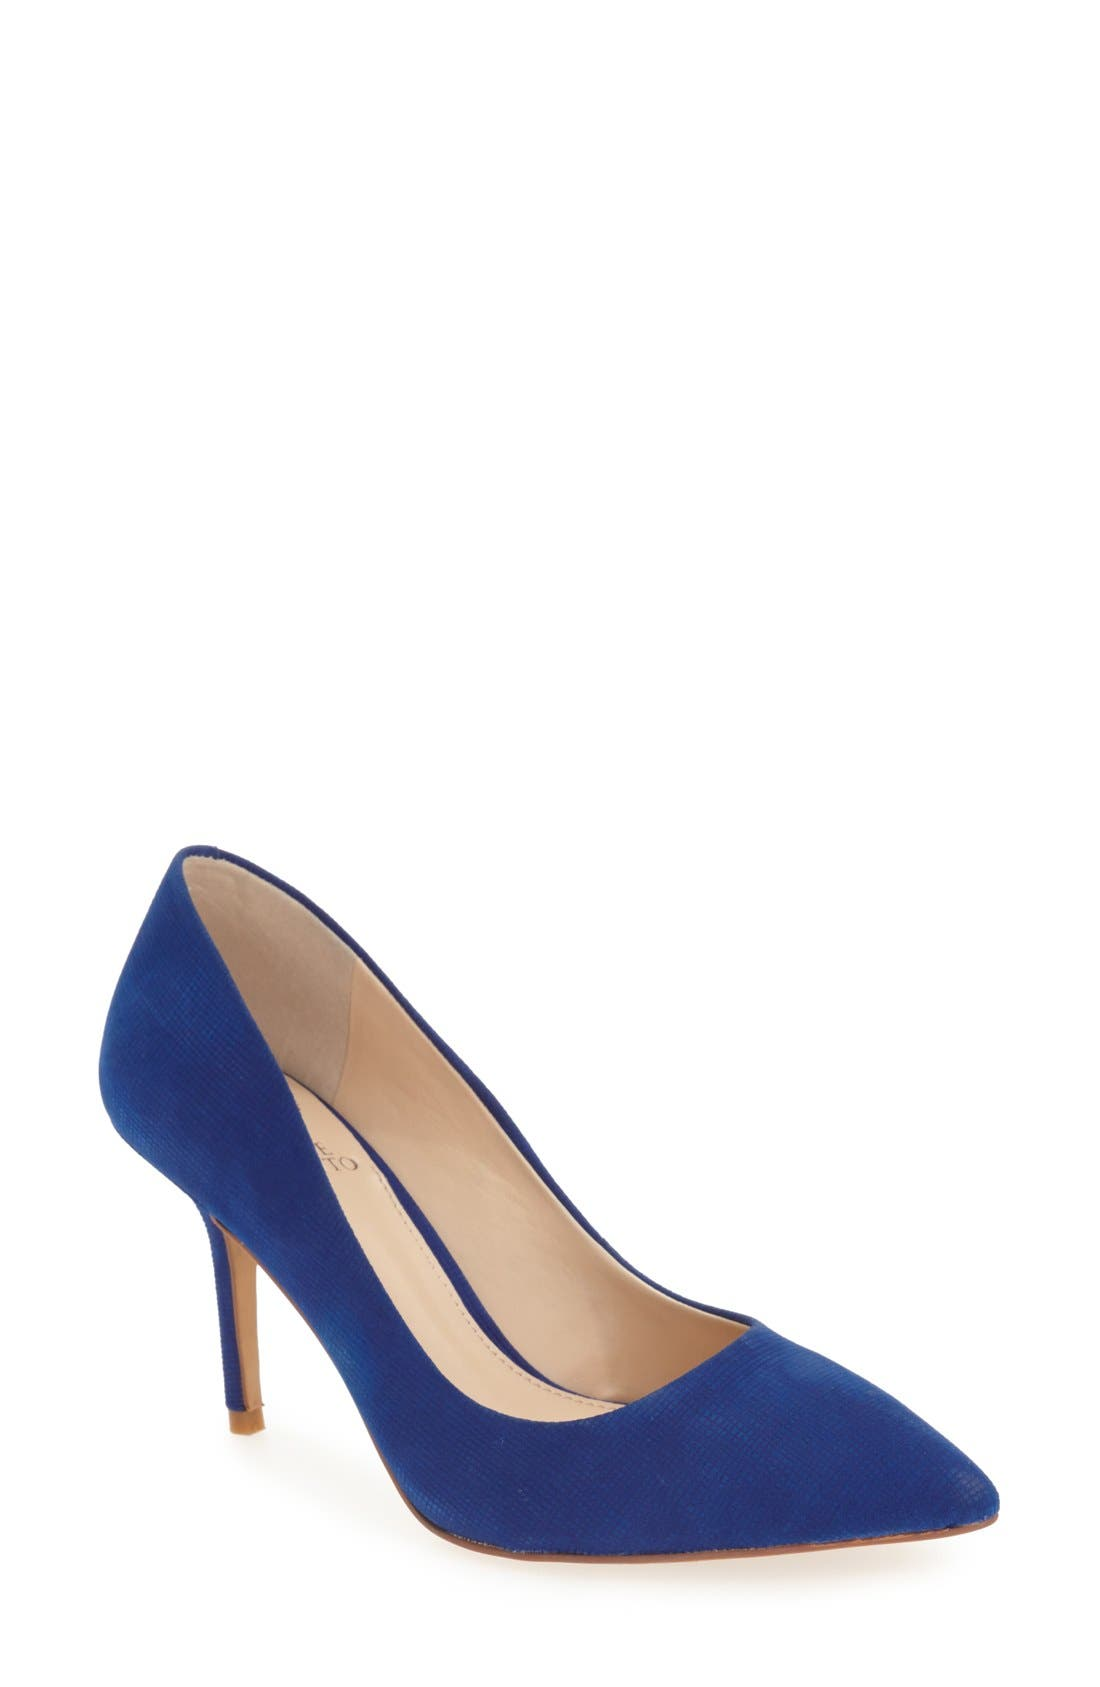 Alternate Image 1 Selected - Vince Camuto 'Salest' Pump (Women)